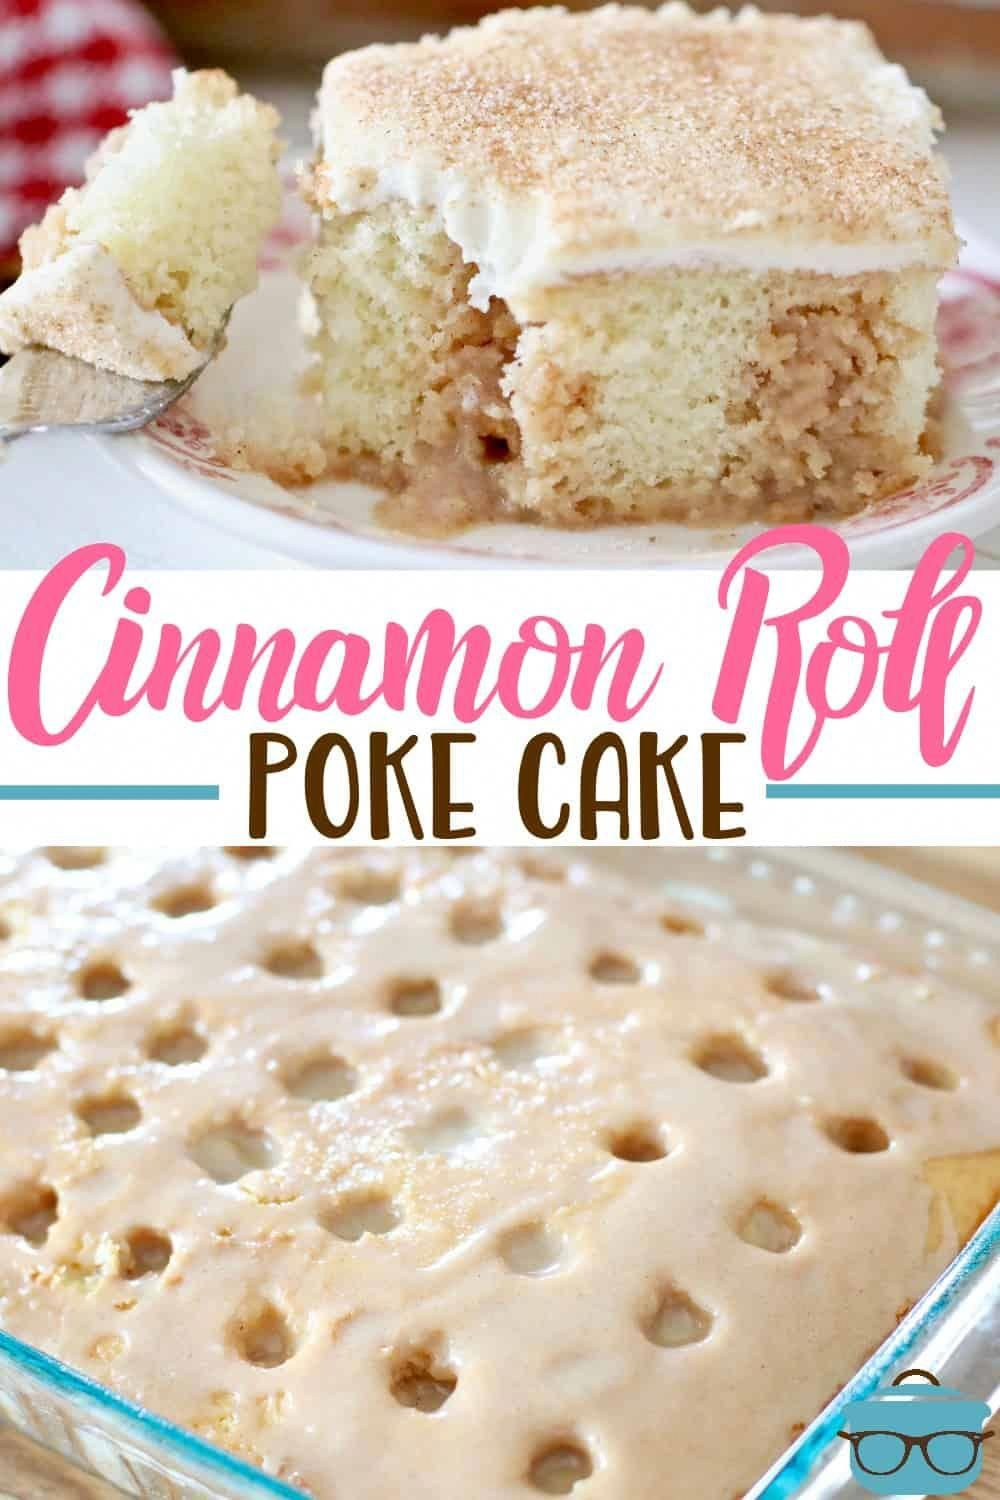 Cinnamon Roll Poke Cake starts with a boxed cake mix, topped with a deliciously sweetenend cinnamon filling and topped with homemade cream cheese frosting!